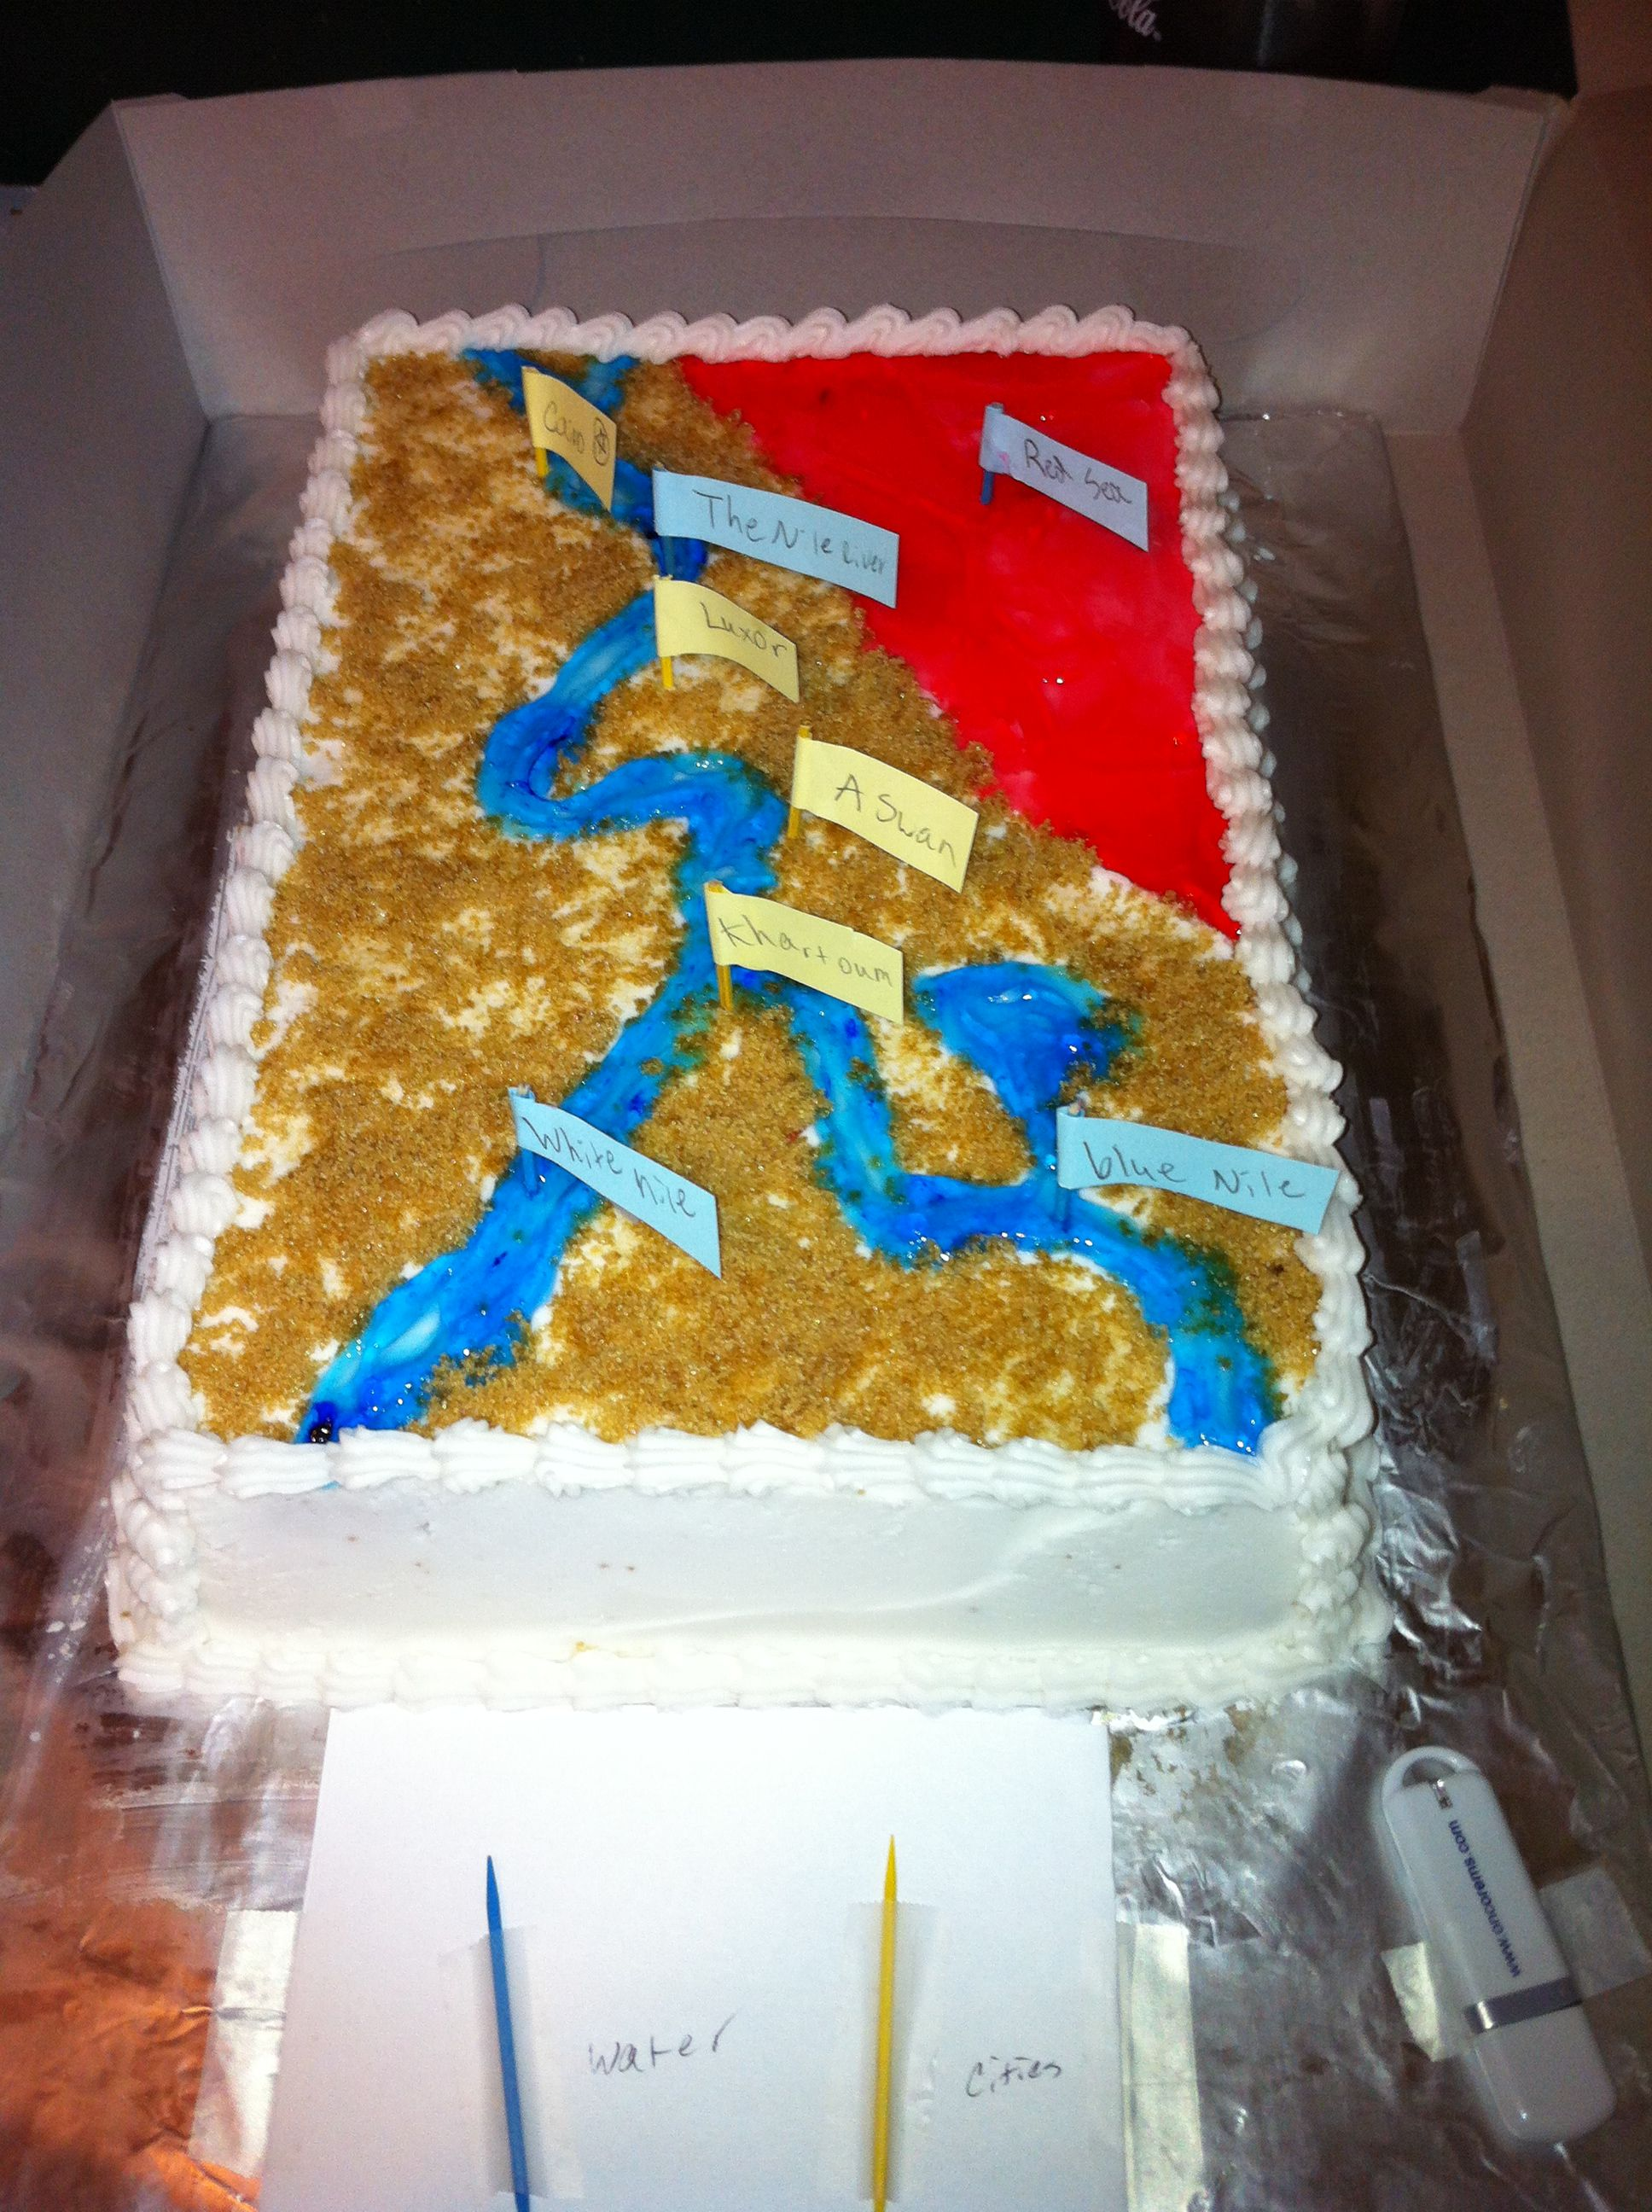 Connor S Nile River Cake For A School Project 10 15 12